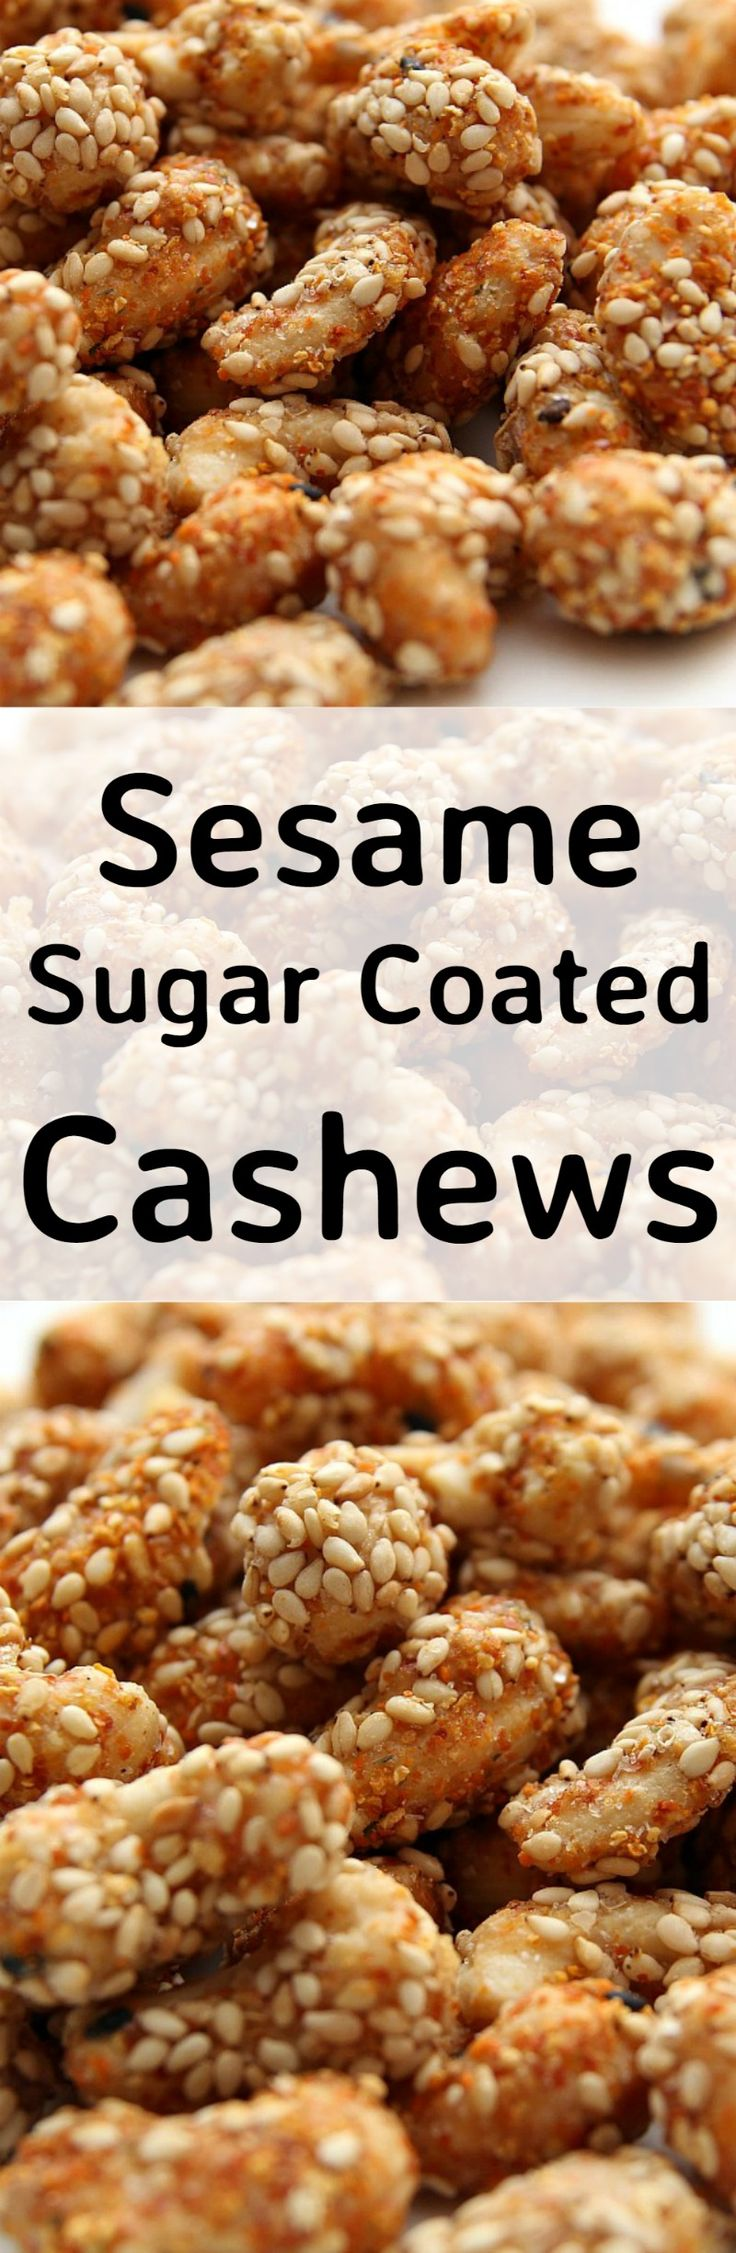 Sesame Sugar Coated Cashews. These are delicious served warm! The sugar coating along with the sesame and other spices makes for a lovely flavor. Recipe also has other flavor suggestions for you to try so make up a batch soon!   Lovefoodies.com